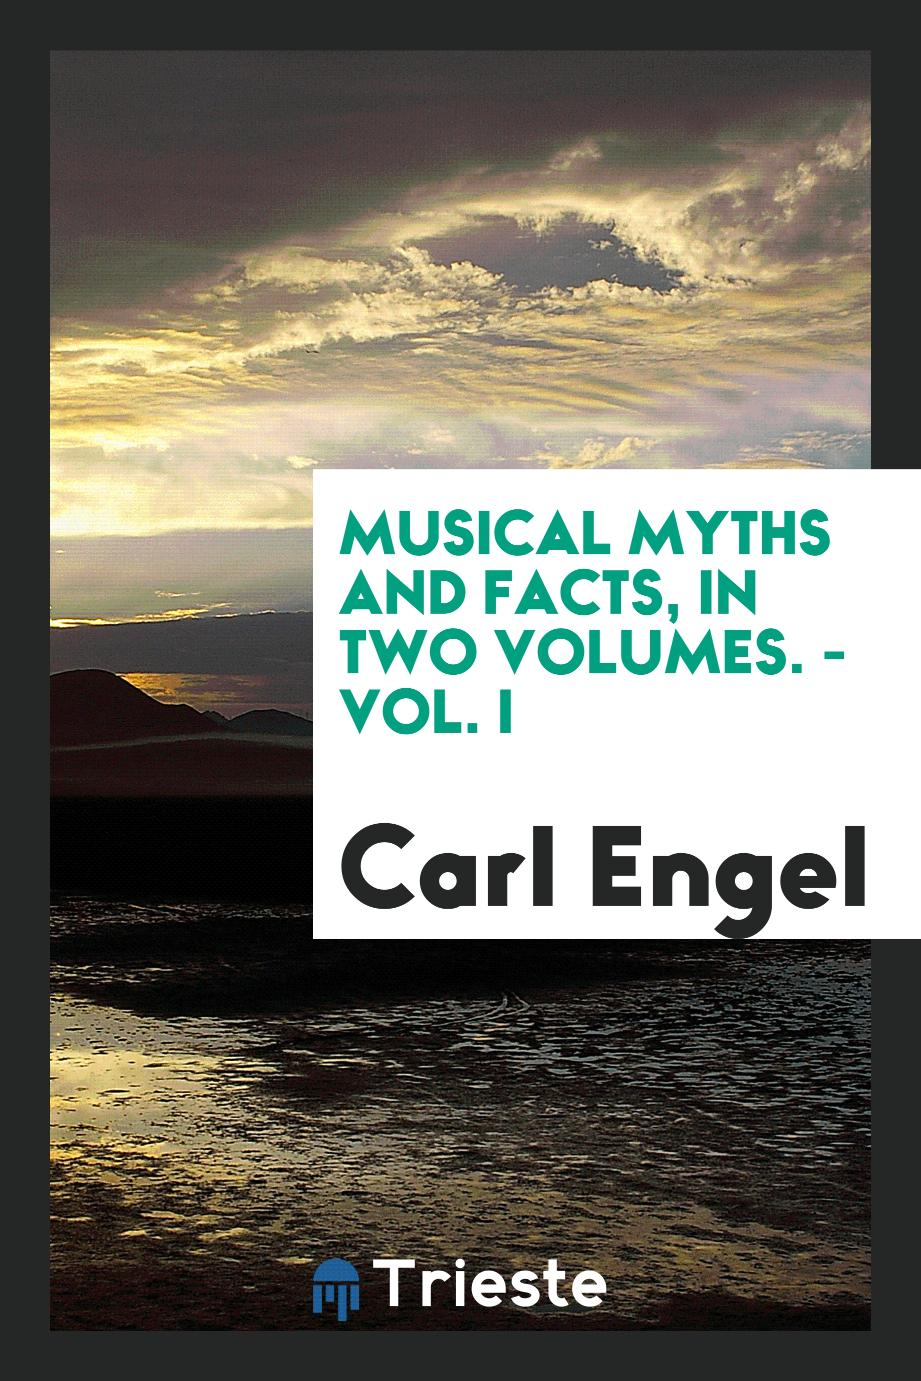 Musical myths and facts, In two volumes. - Vol. I